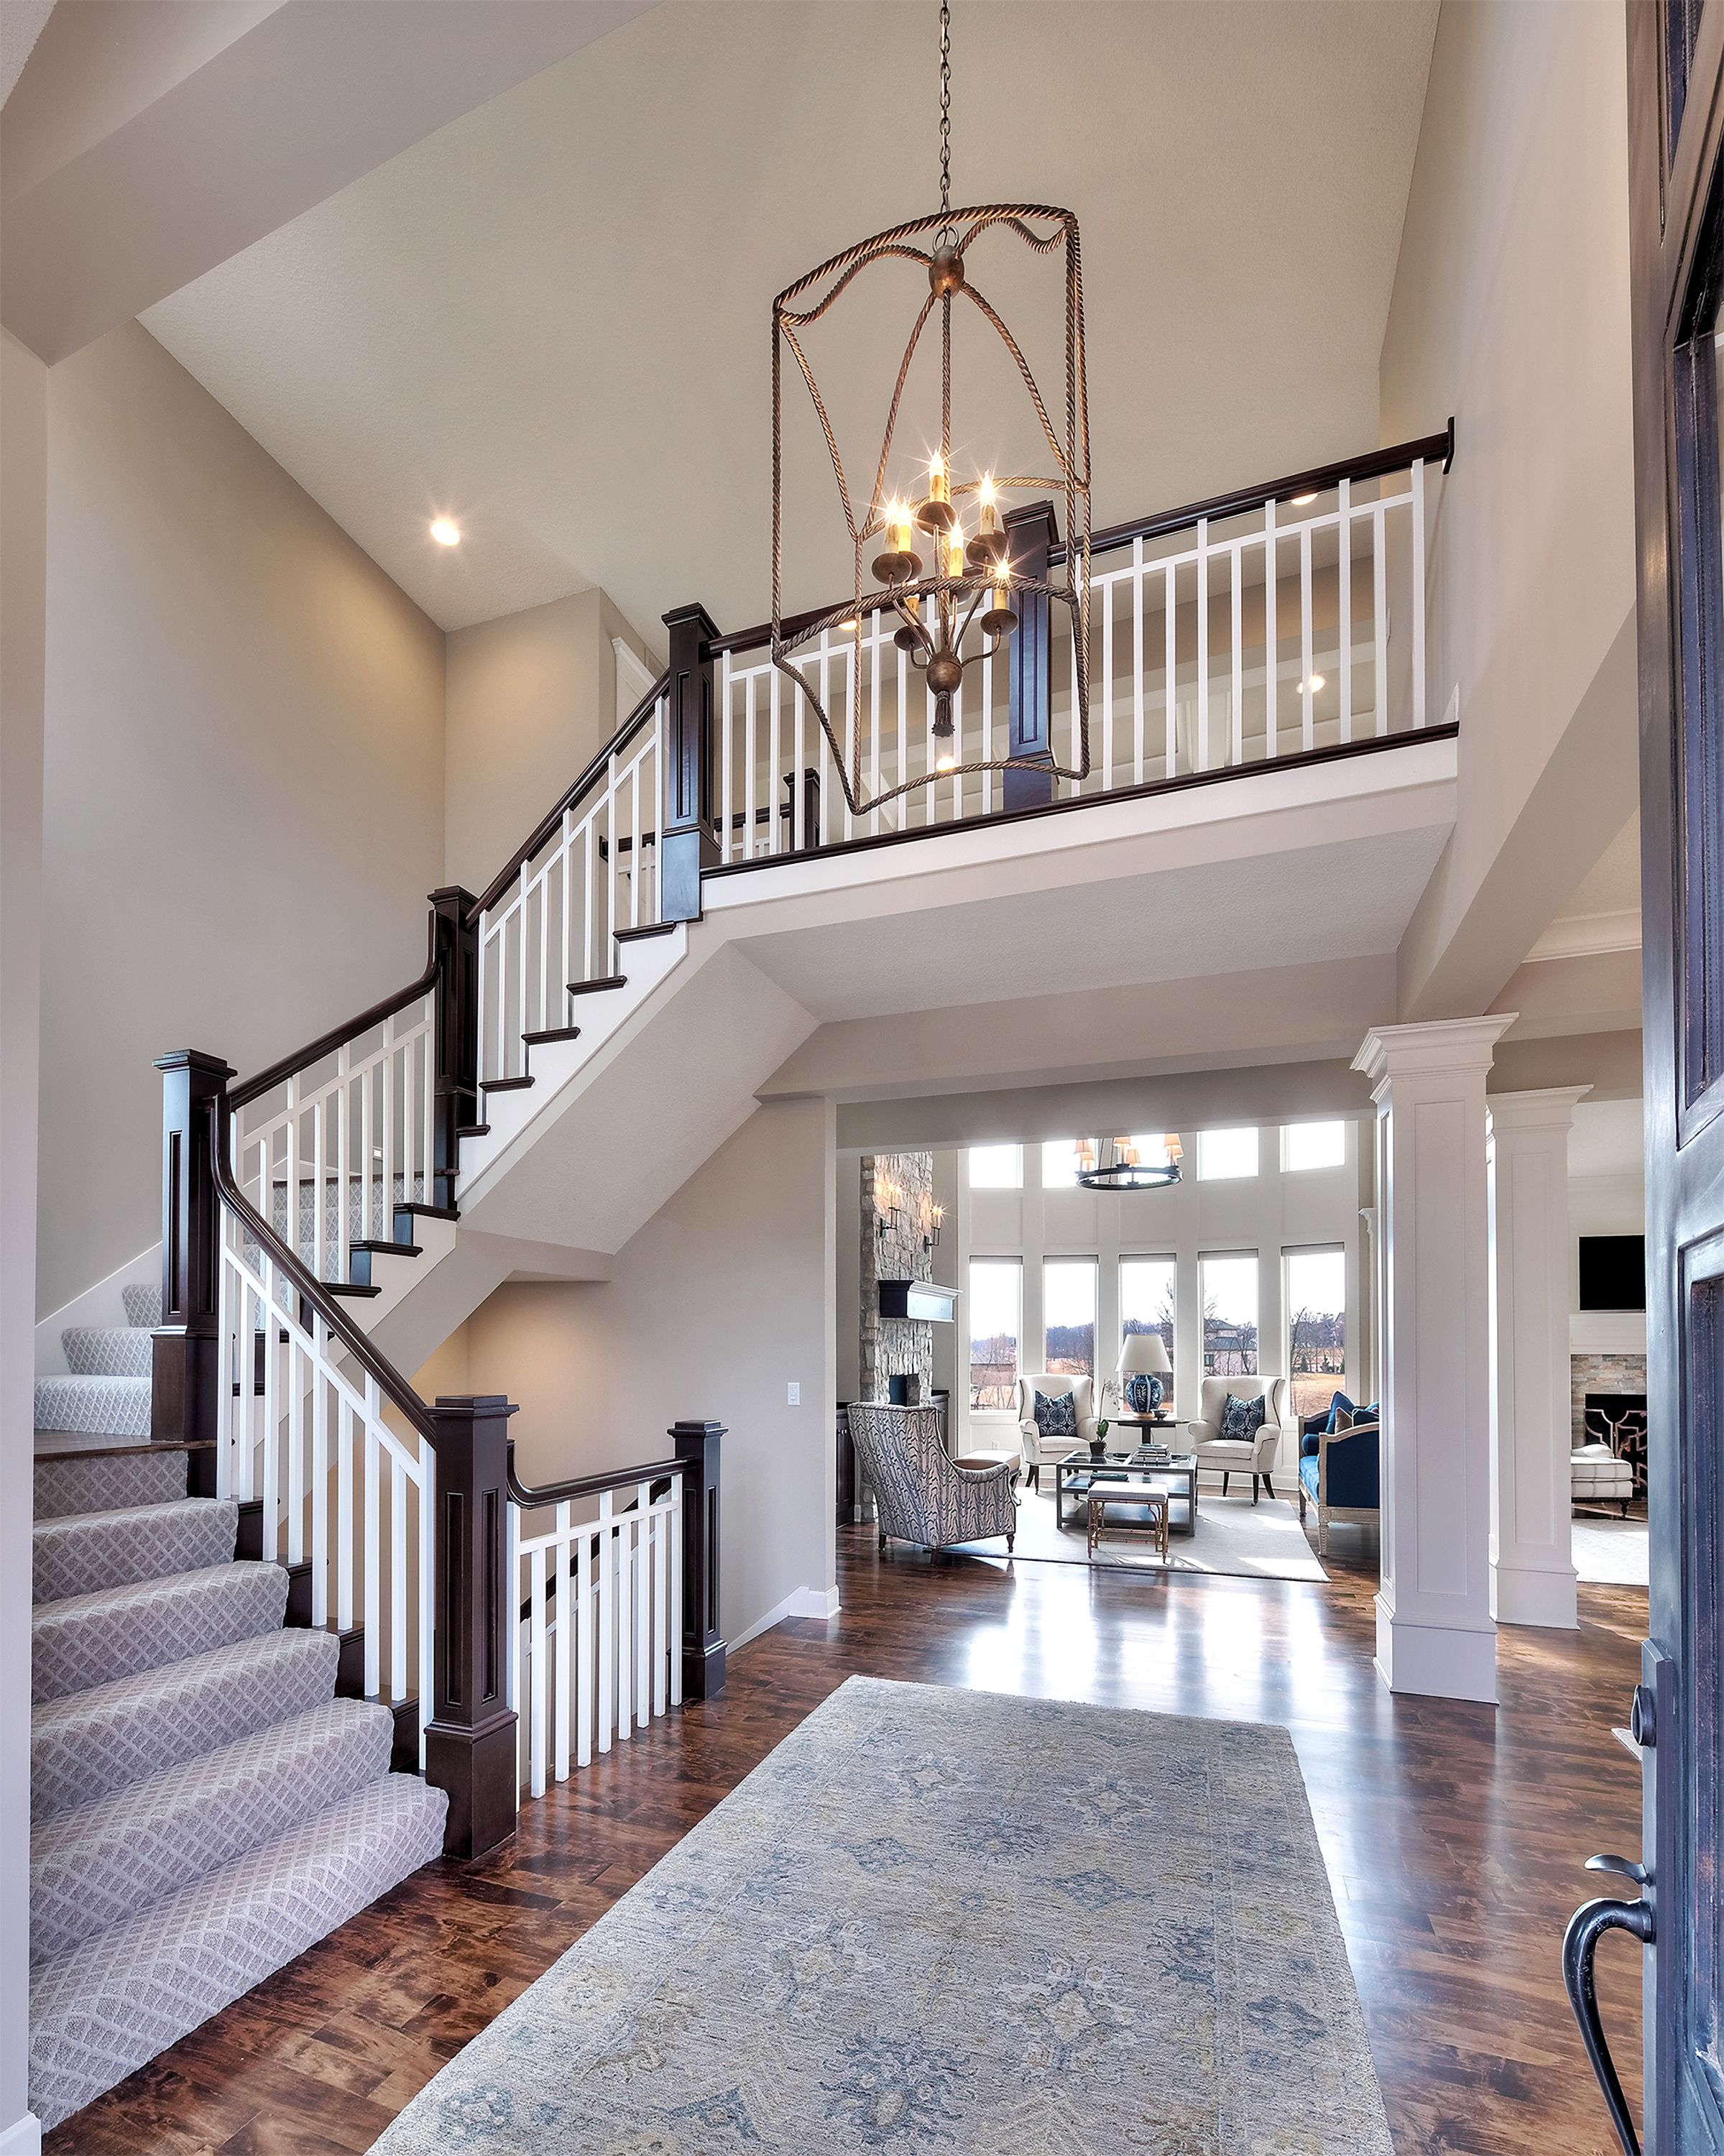 Staircase Home Foyer : Entry curved staircase open floor plan overlook from